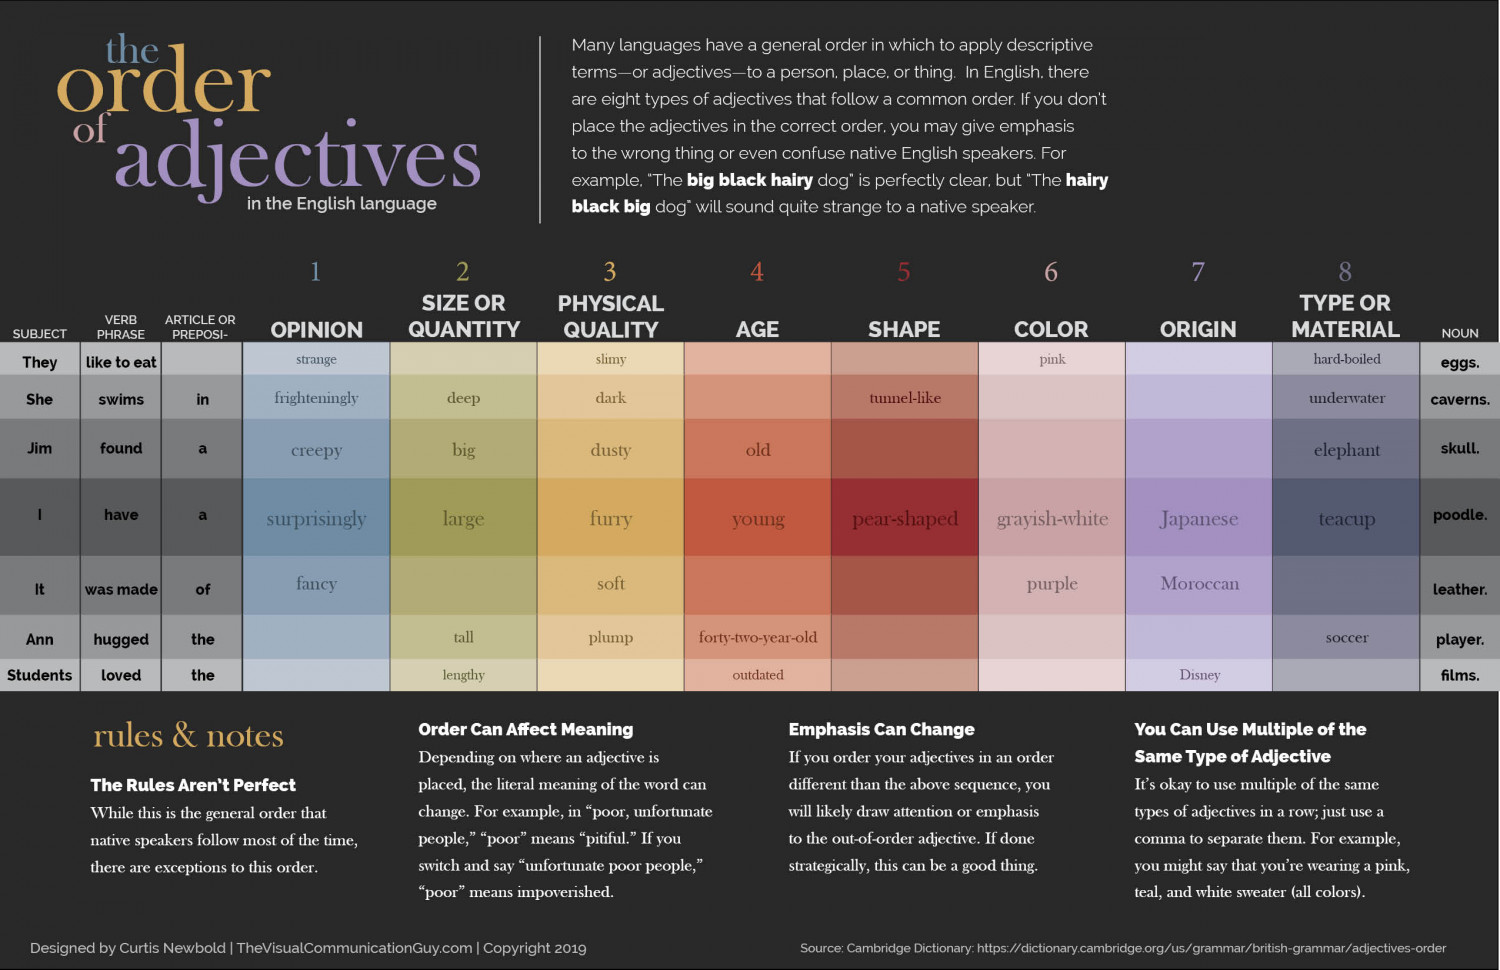 The Order of Adjectives Infographic